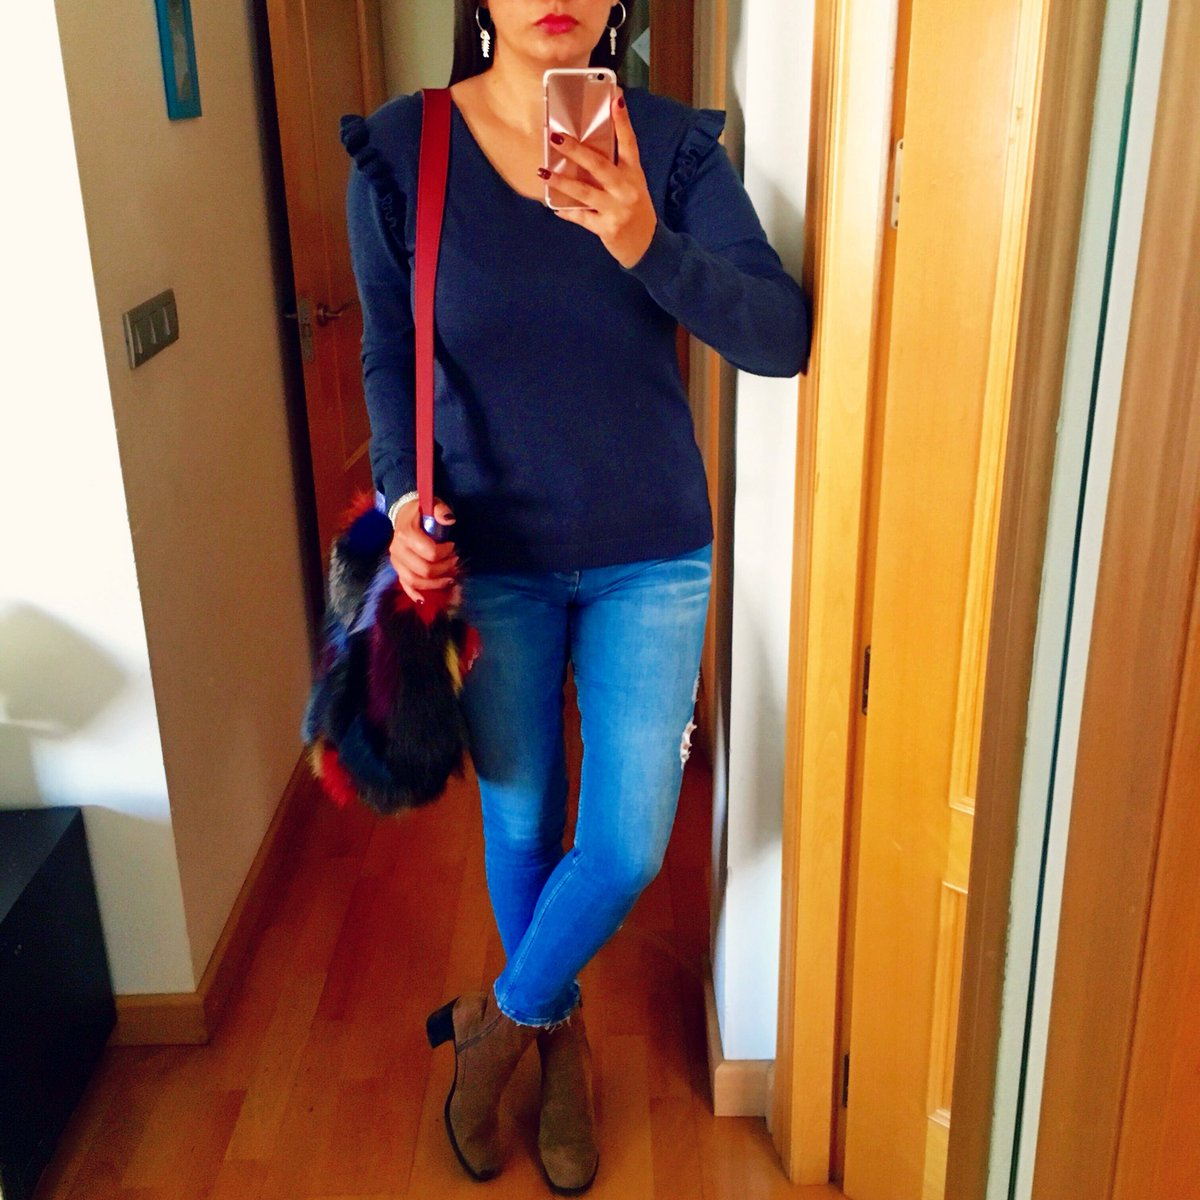 What you do today can improve all your tomorrow! #BAG @GloriacaOficial #BOOTS &amp; #JEANS @Zara #EARRINGS @MomaCartagena #Look #Lookoftheday #Lookdeldia #WearingToday #Outfit #OOTD #Outfitoftheday #Style #Styles #Stylish #Fashion #Zara #Gloriaca #PequeñaMoma #Shakis100 @Shakis100<br>http://pic.twitter.com/hWKwvzOsKU